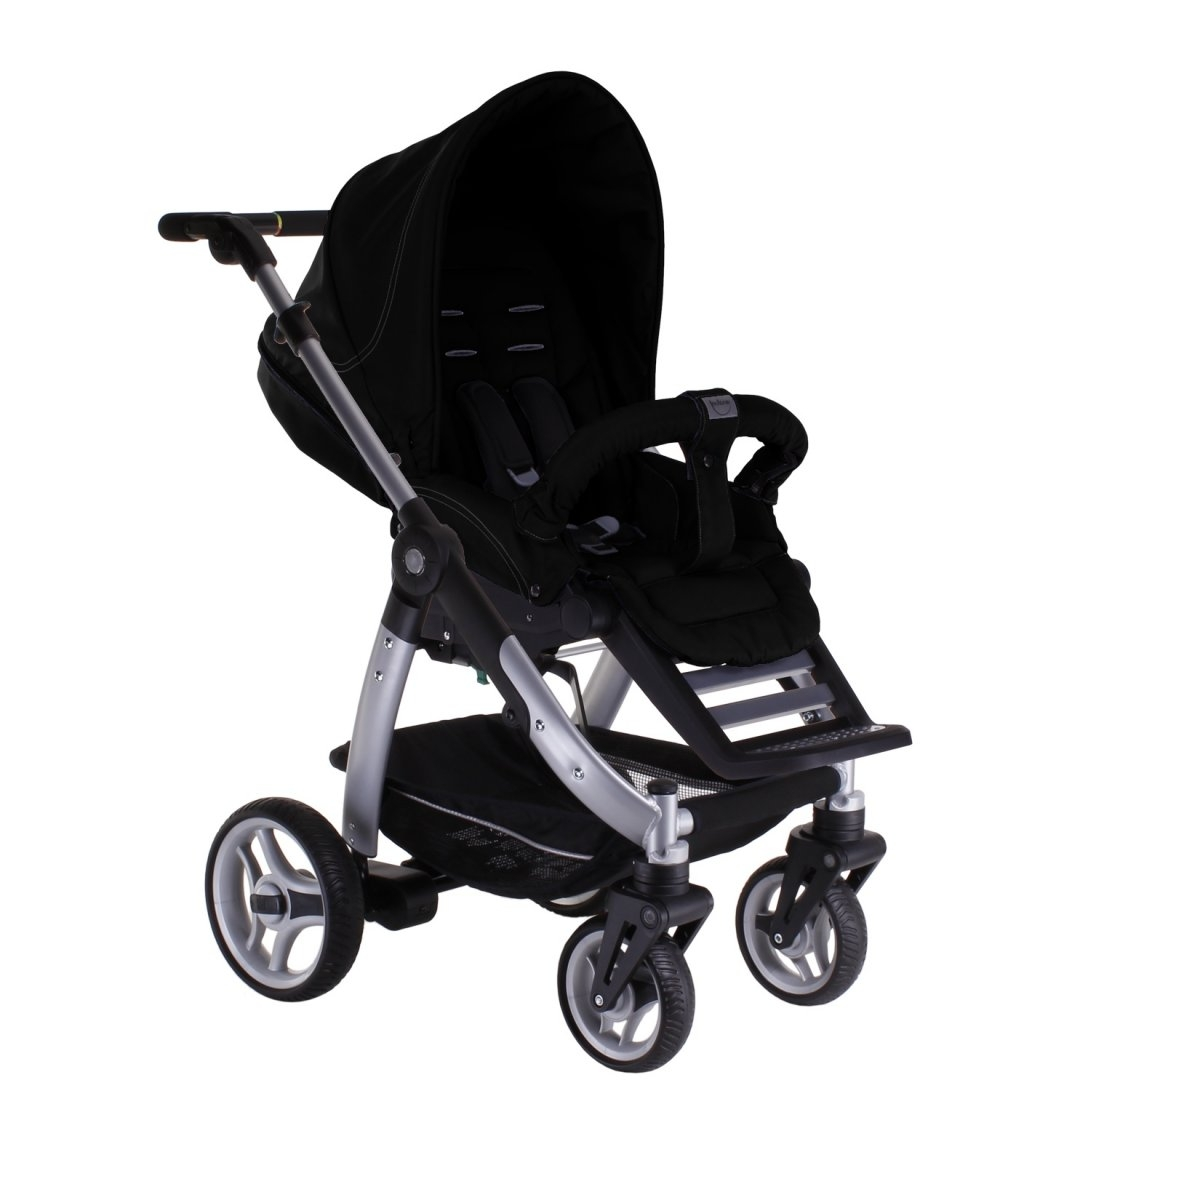 teutonia cosmo silber kinderwagen sportwagen 2014 farbwahl ebay. Black Bedroom Furniture Sets. Home Design Ideas